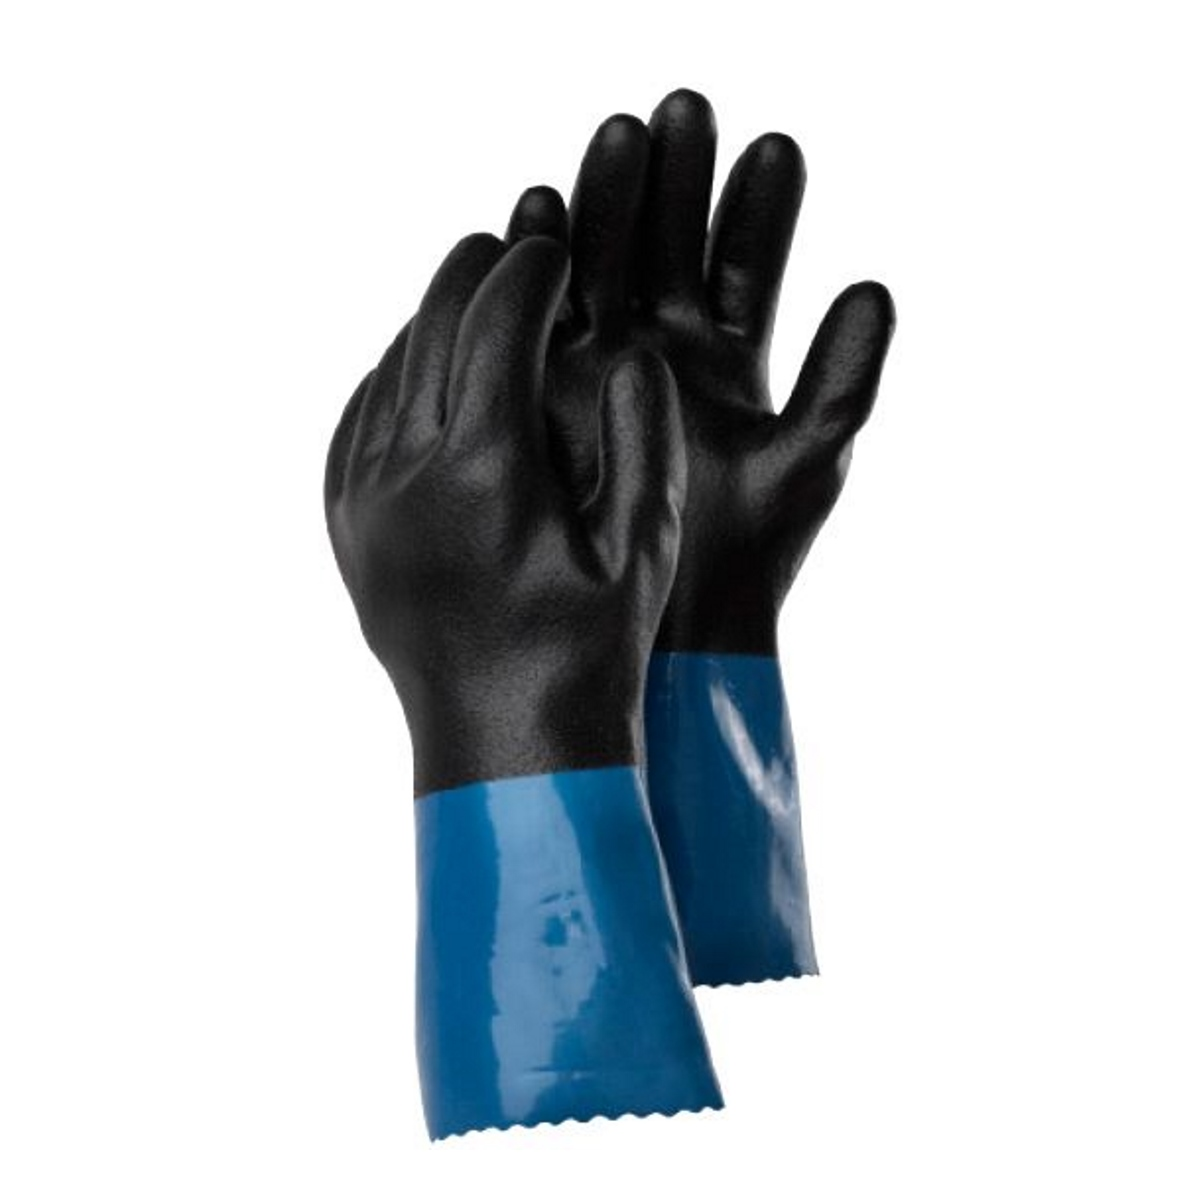 Tegera 71000 Chemical Protection Glove